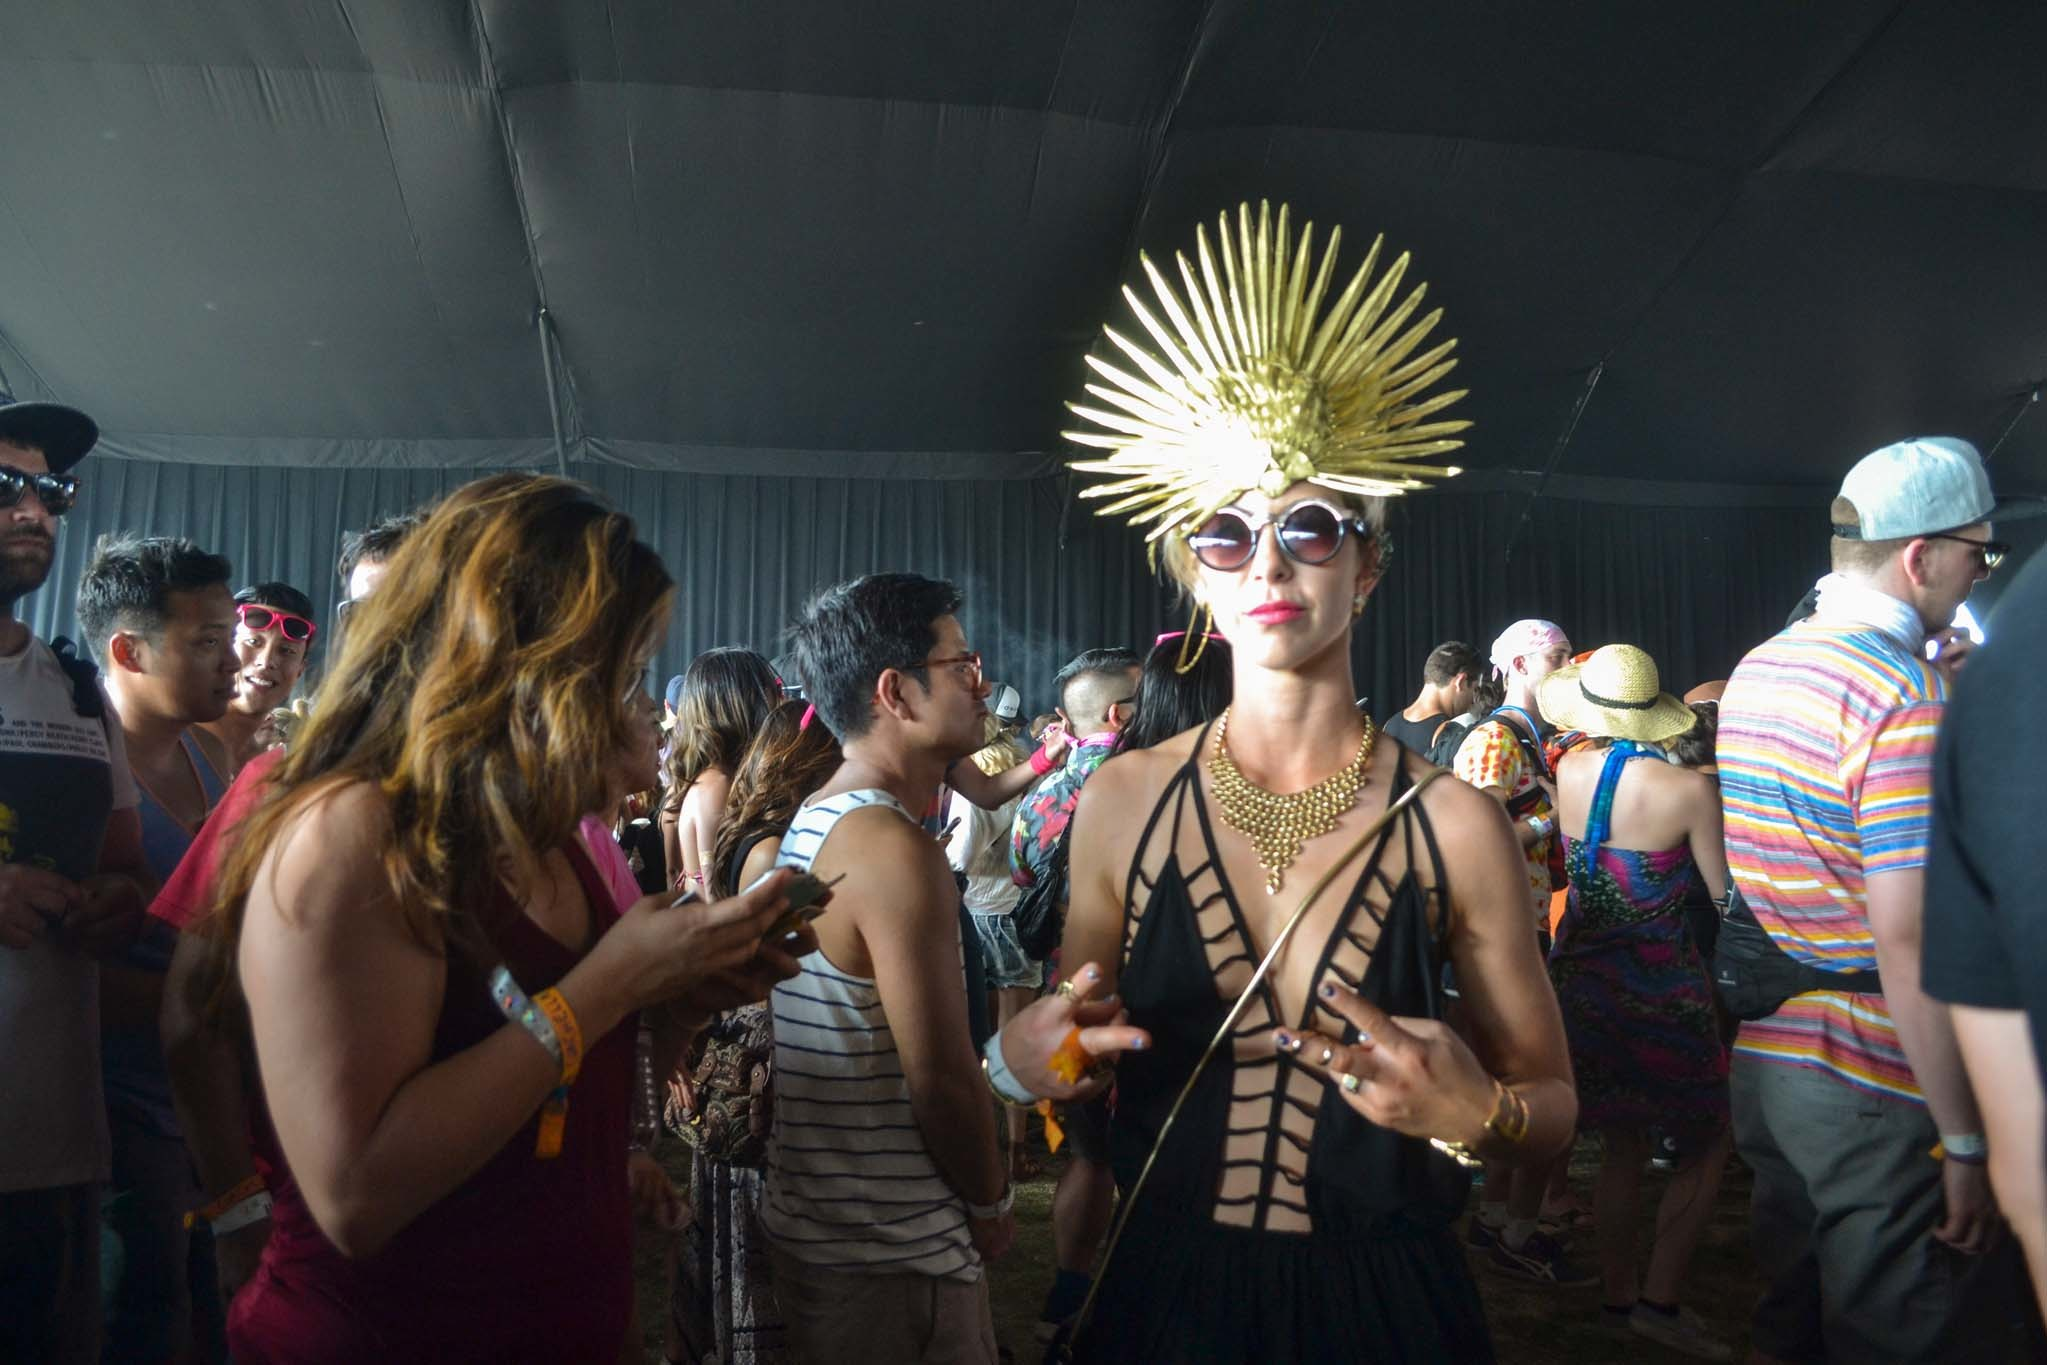 Our 100 best photos from Coachella 2014